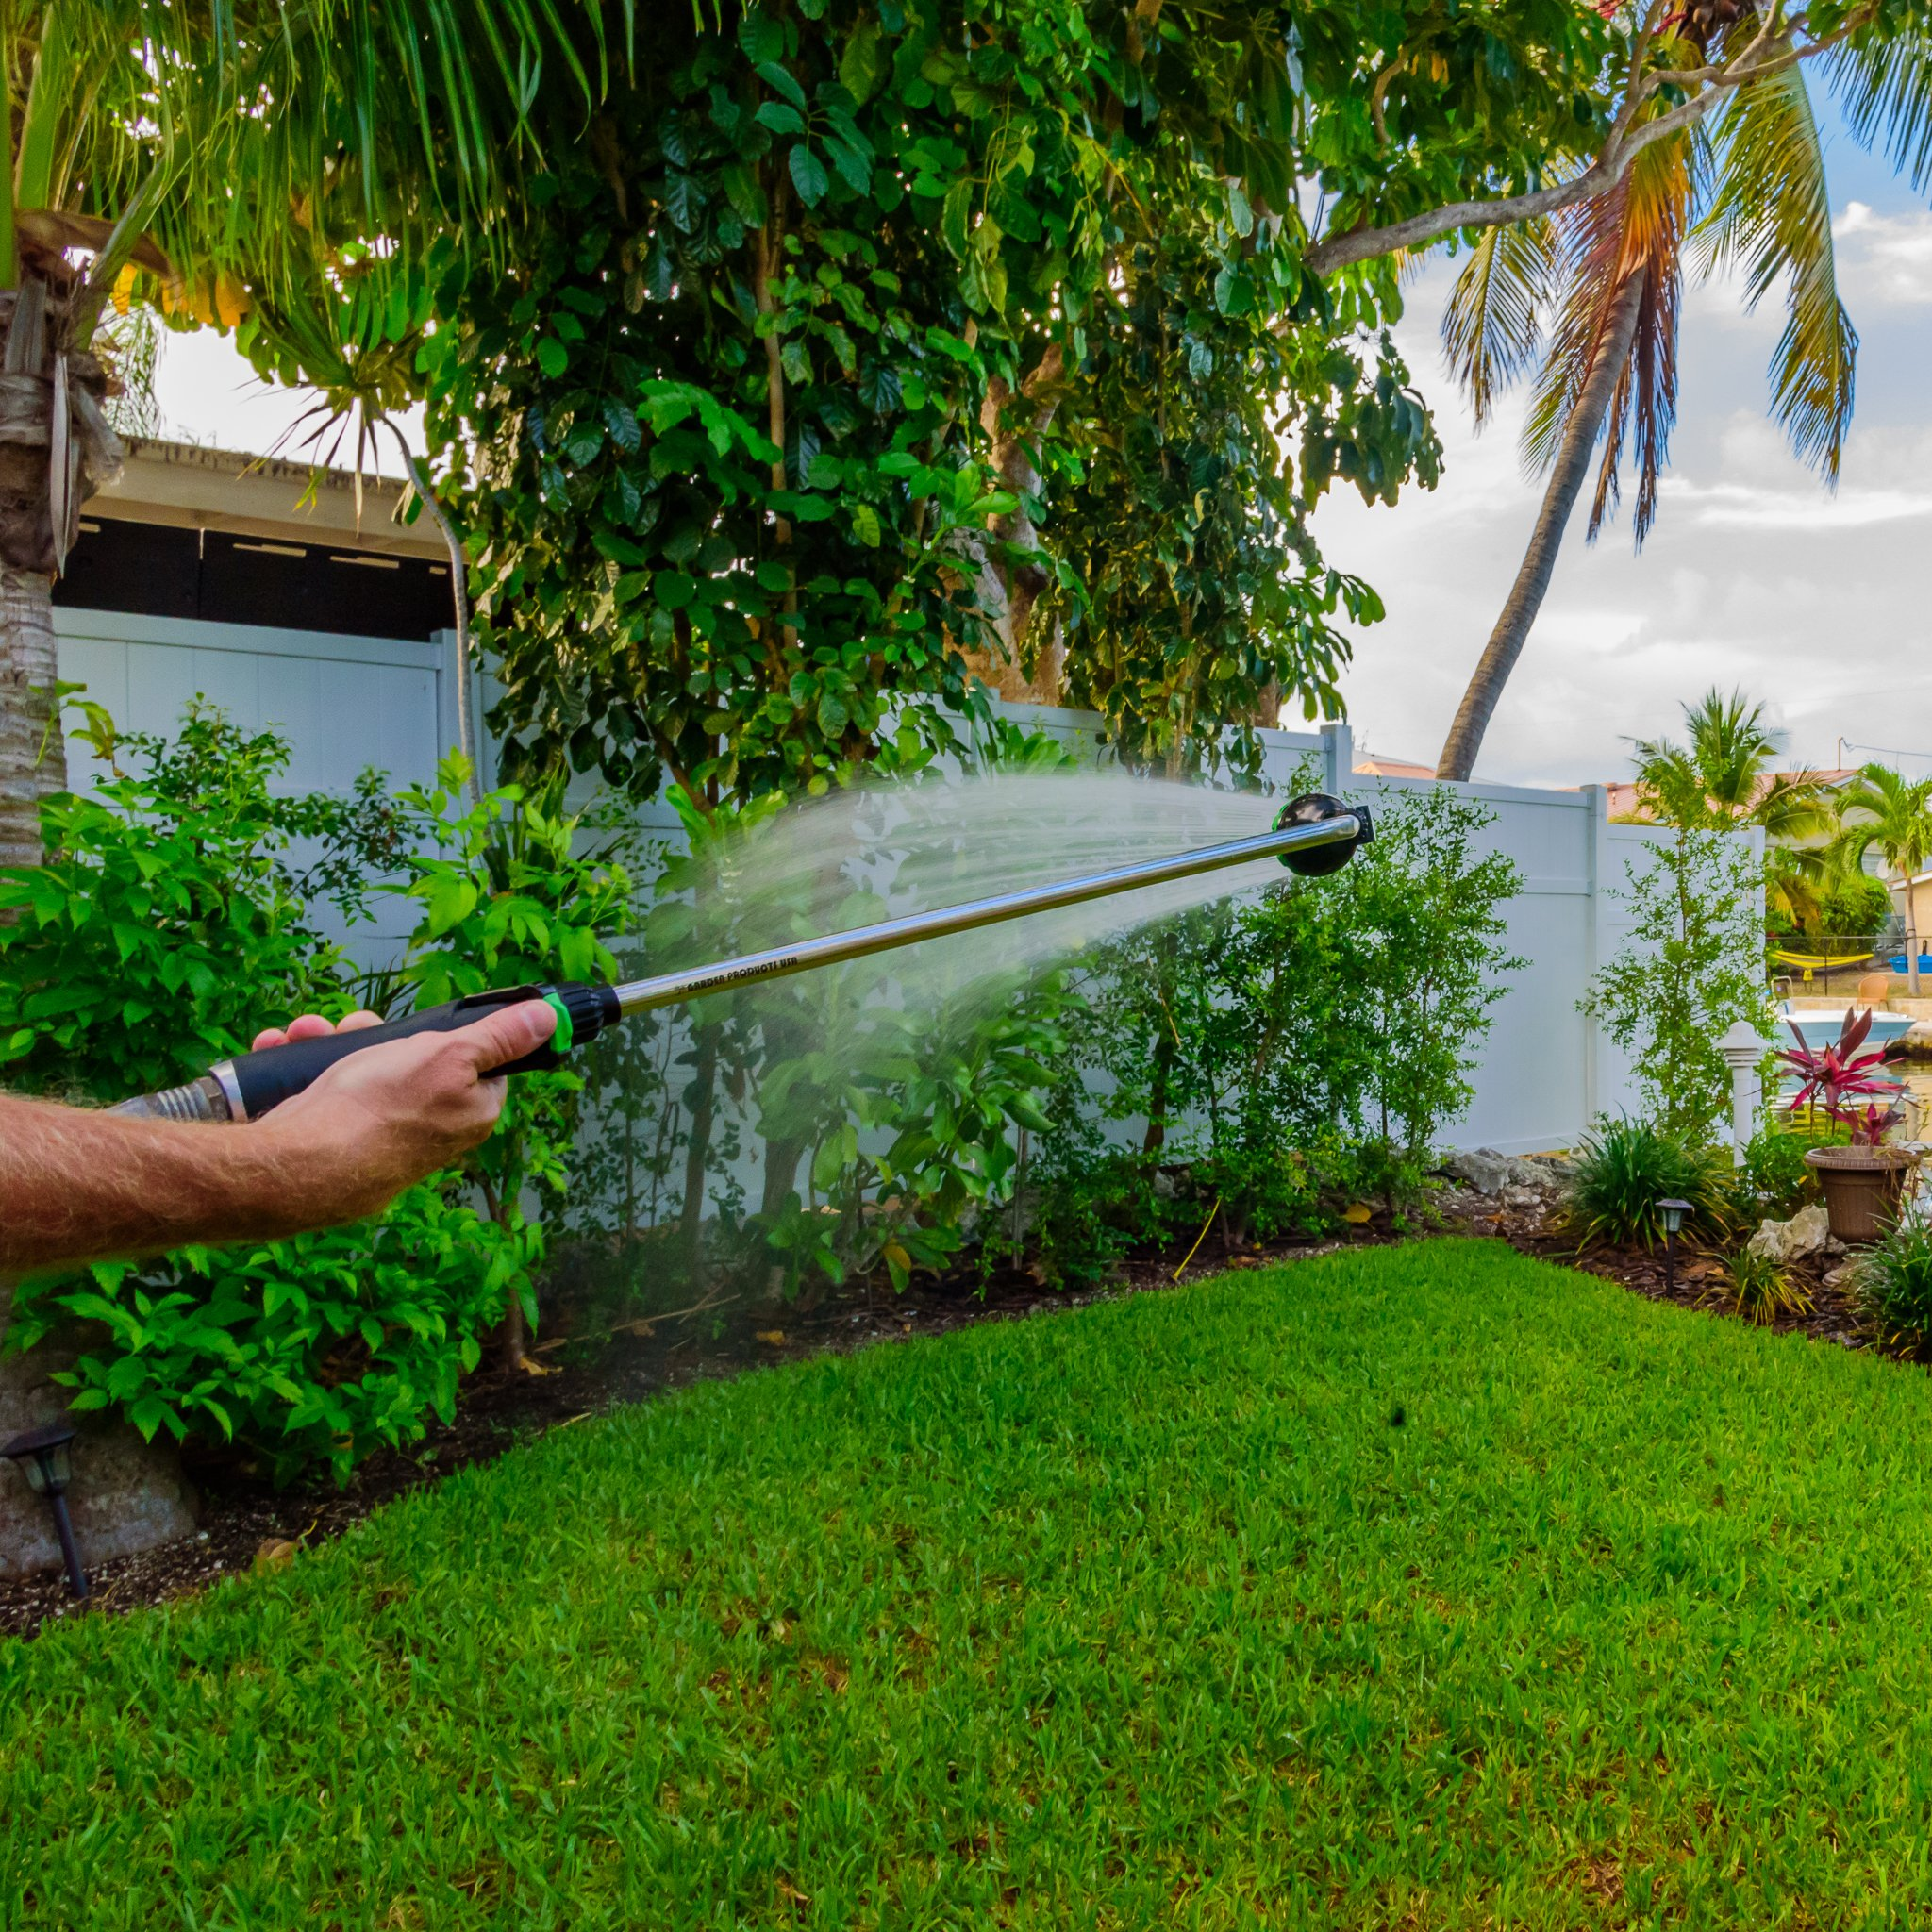 Garden Spray Watering Wand for Hose with 7 Nozzle Patterns and Easy Shut Off Valve for Lawns, Gardens, Baskets, Flowers, Shrubs, and More, 33 Inch Long Handle, by Garden Products USA by Garden Products USA (Image #6)